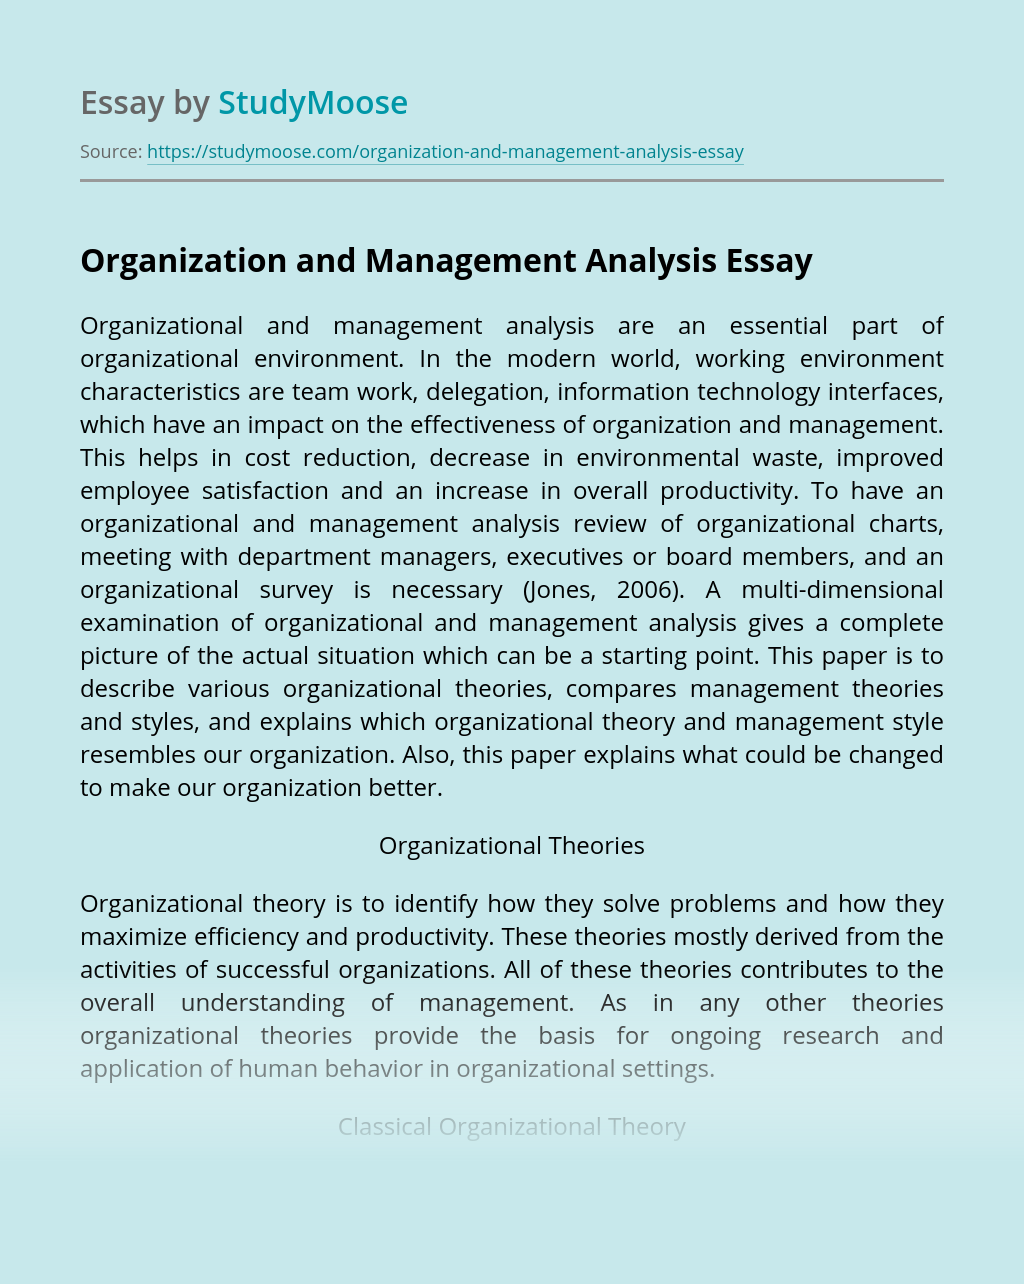 Organization and Management Analysis